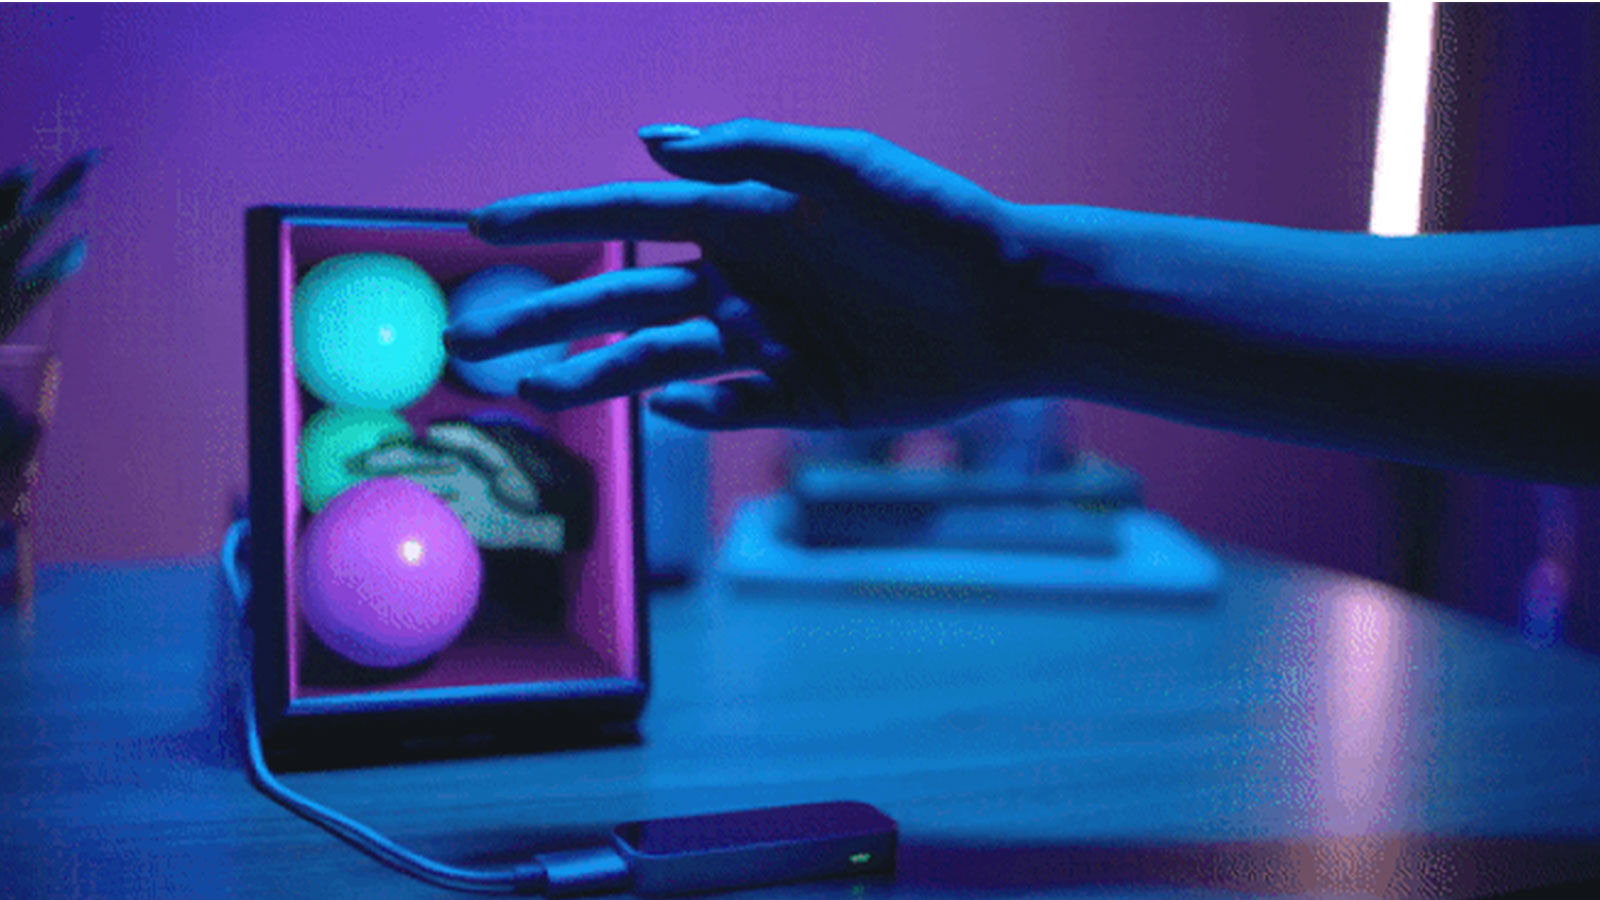 Hand interacting with Ultraleap Leap Motion Controller